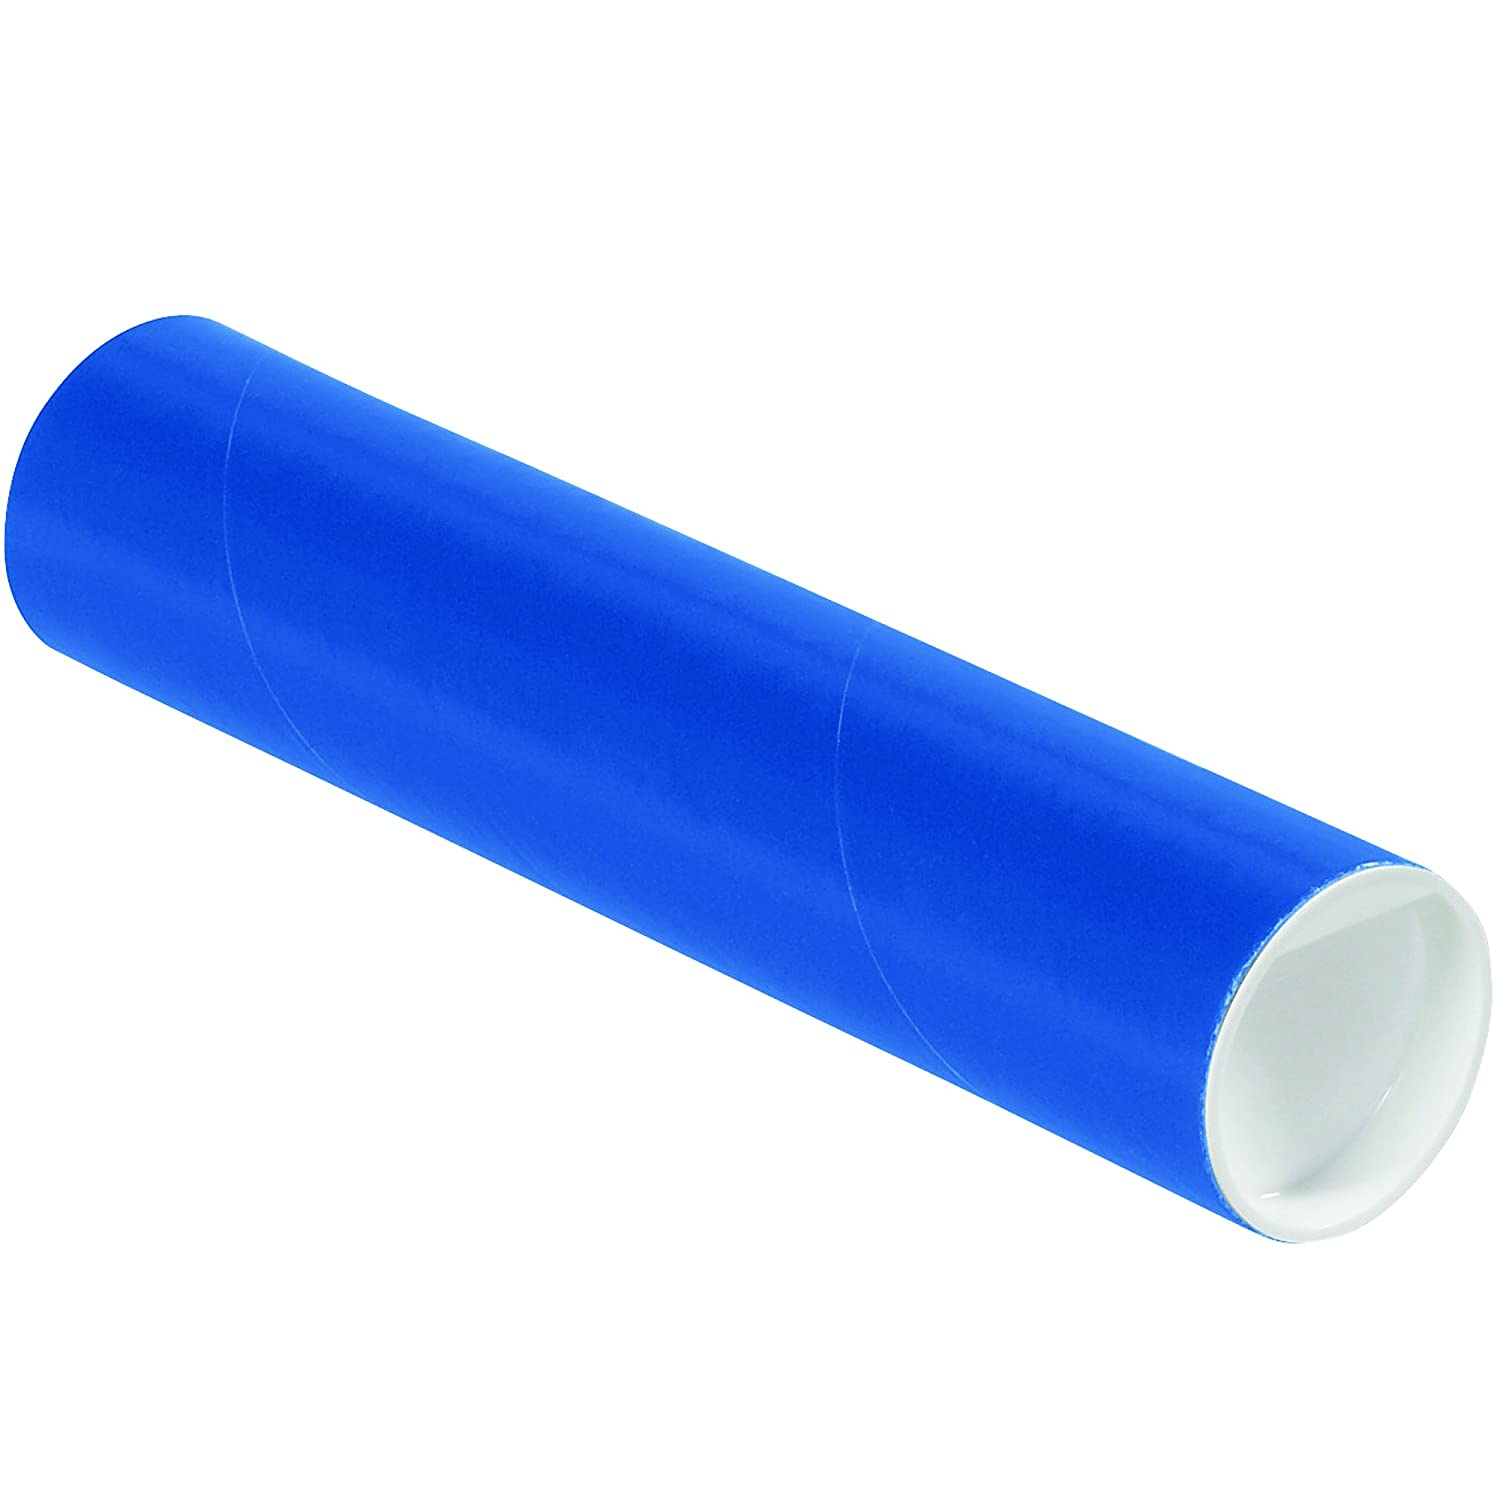 Ship Now Supply SNP2009B Mailing Tubes with Caps 2 x 9 Blue Pack of 50